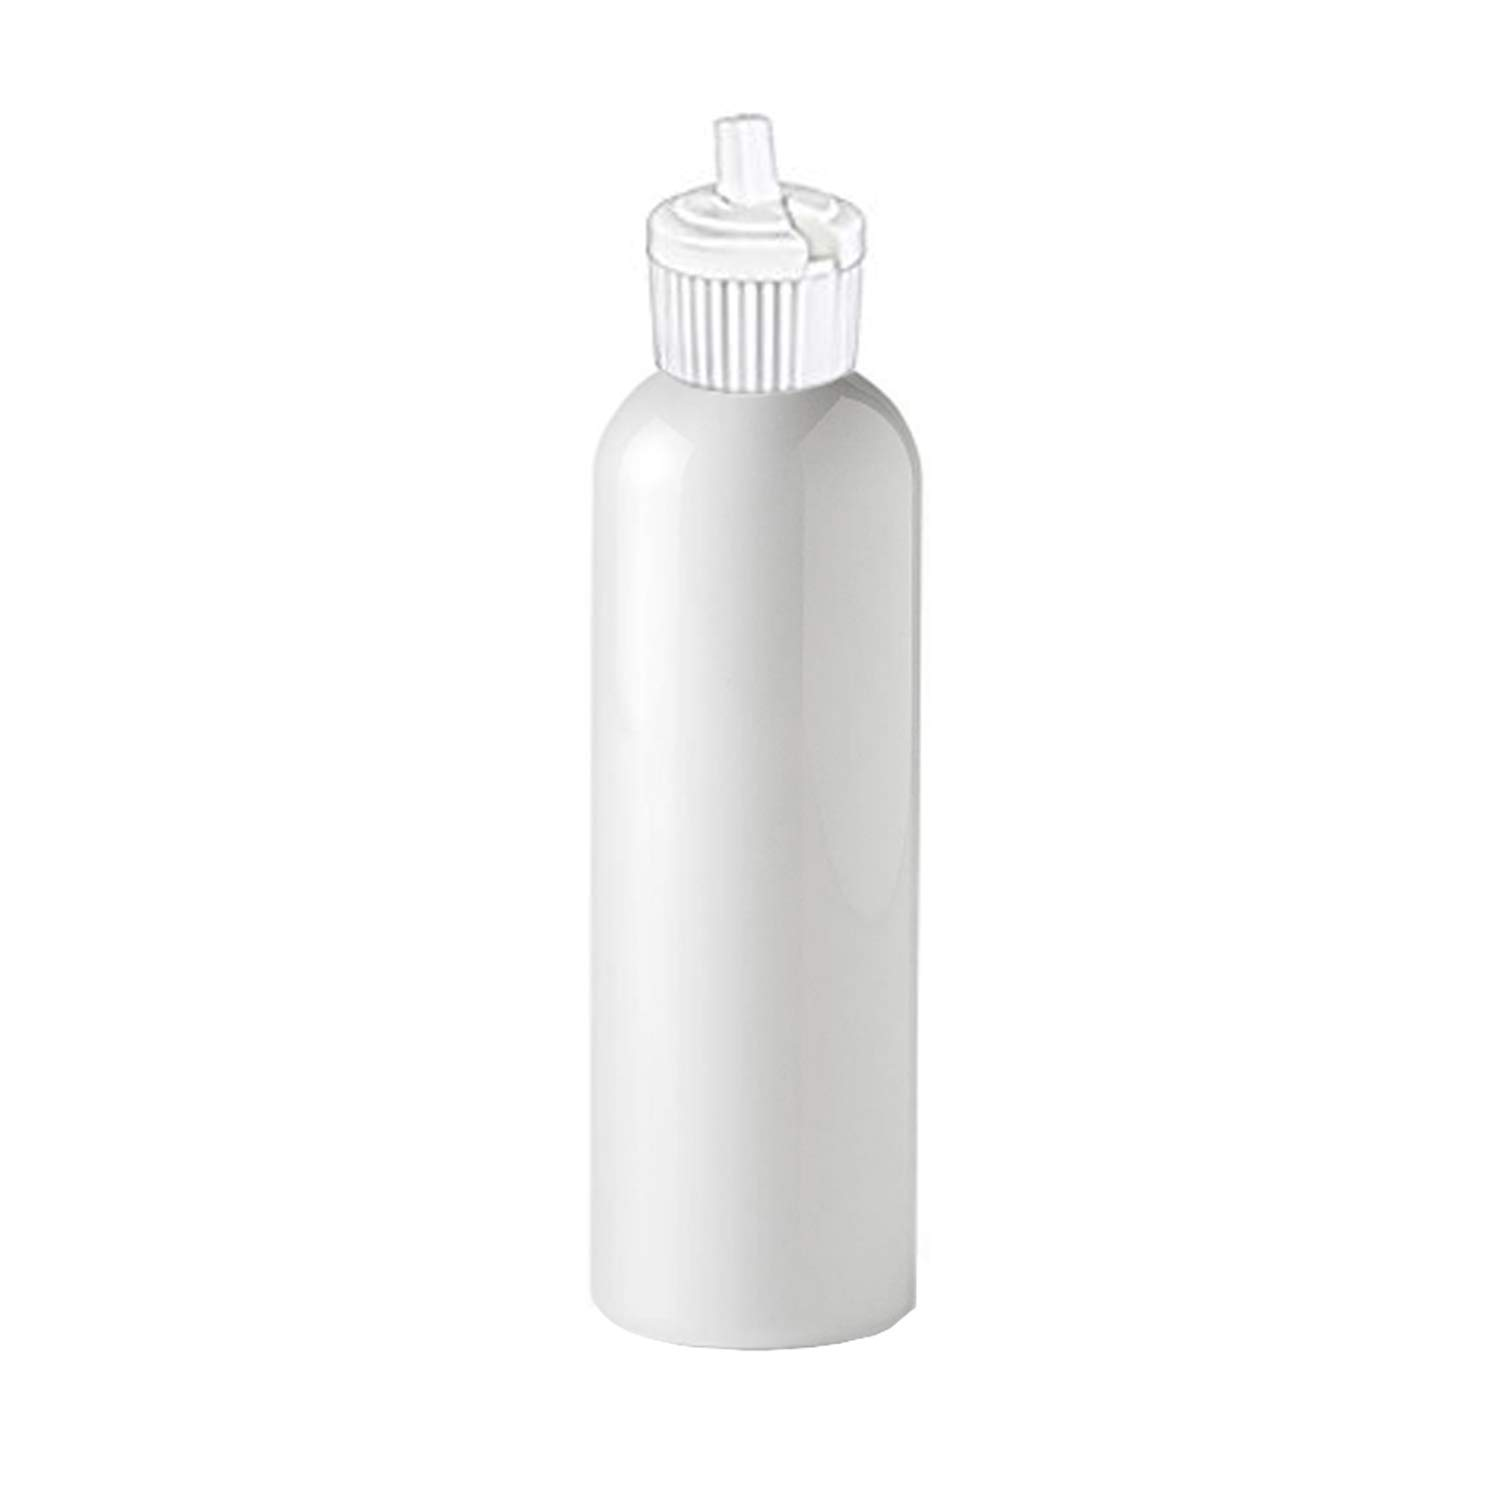 MoYo Natural Labs Bulk Travel Containers HDPE 4 oz Spout Bottle Commercial Grade Turret Top 4 oz Food Safe Mini Squirt Bottle Made in USA (Neck 20-410) (Pack of 50)